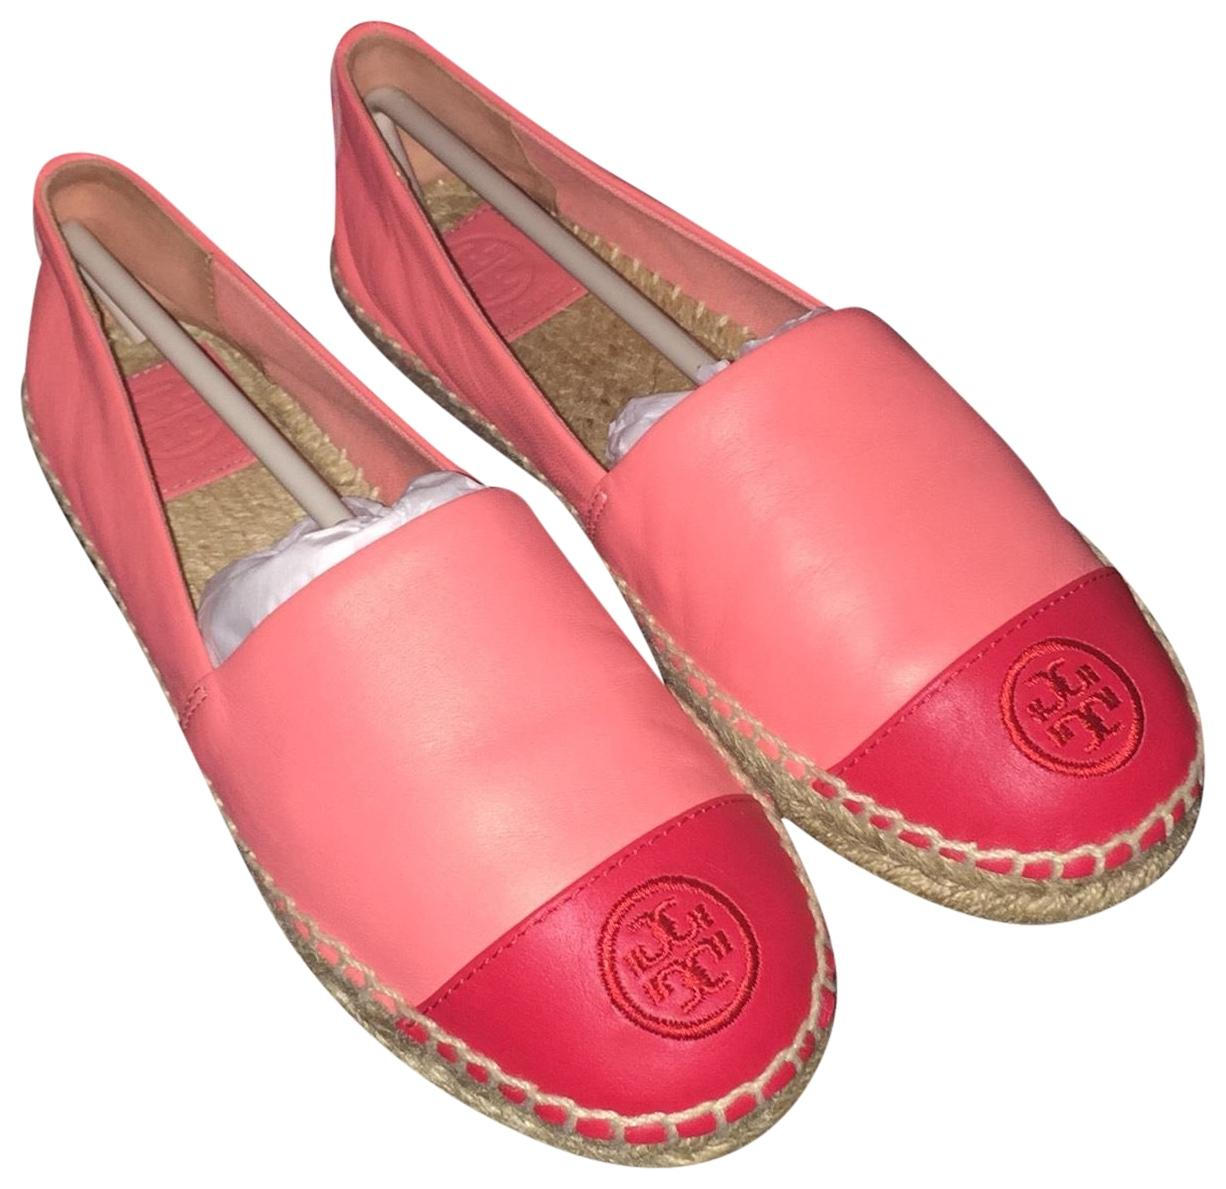 Tory Burch Coral and Red Leather Colorblock Espadrilles Flats Size US 7 Regular (M, B)